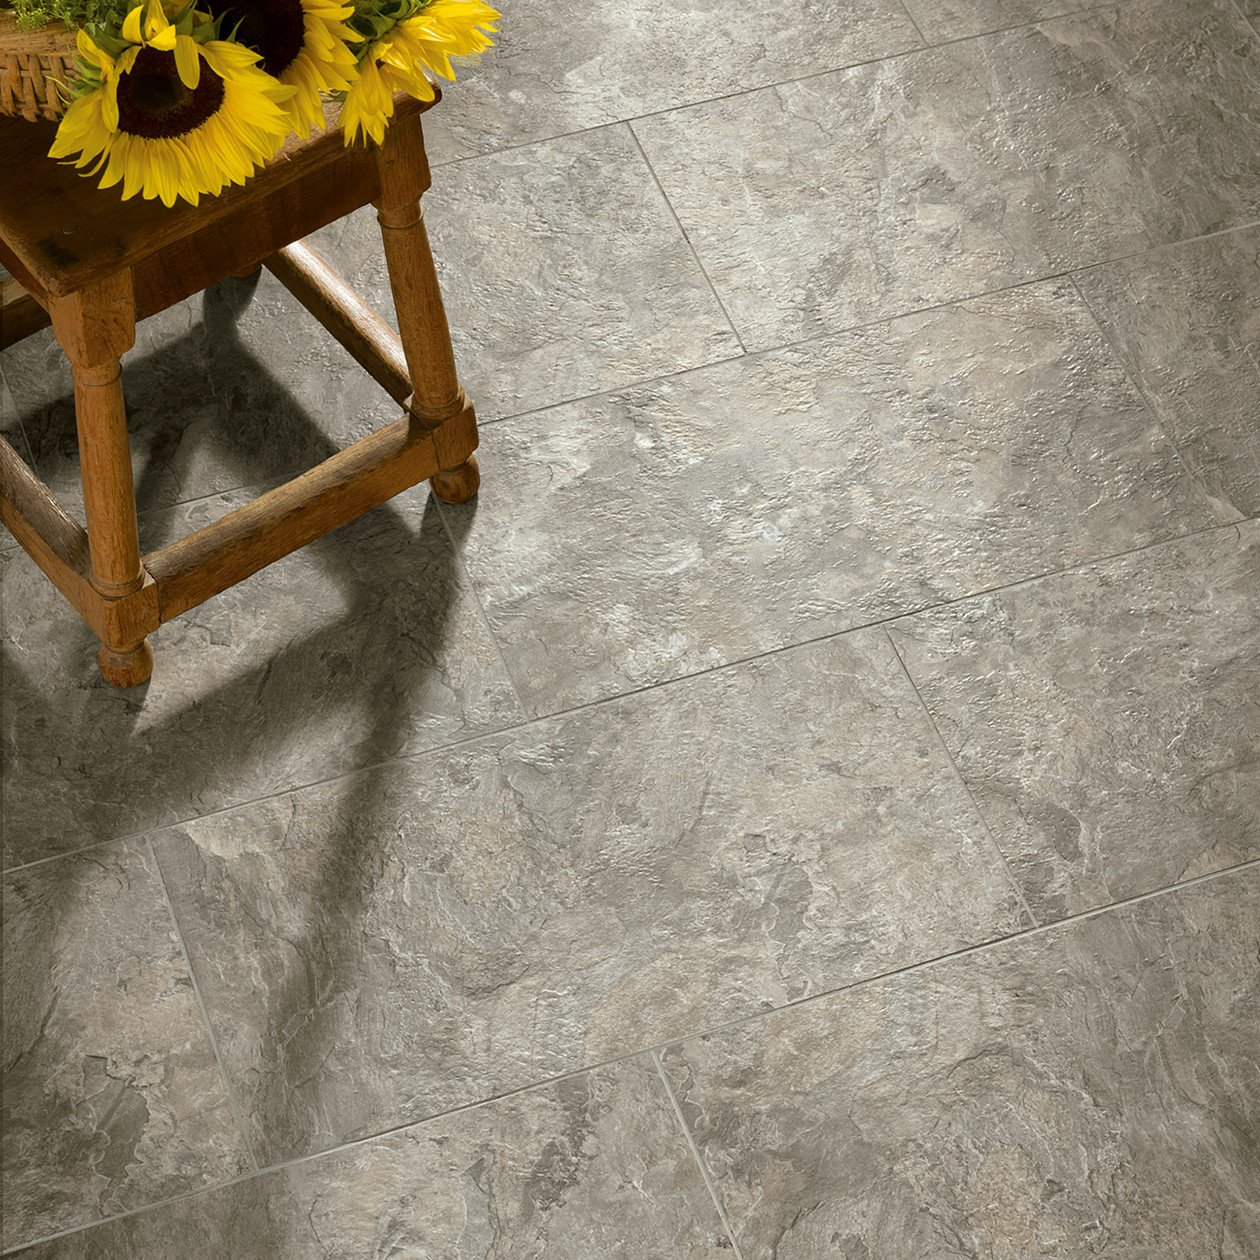 floors vinyl cladyspaintstor sand alterna updates durango and this x bathrooms master flooring tiles luxury complements on bleached armstrong bathroom images lvt tile best pinterest